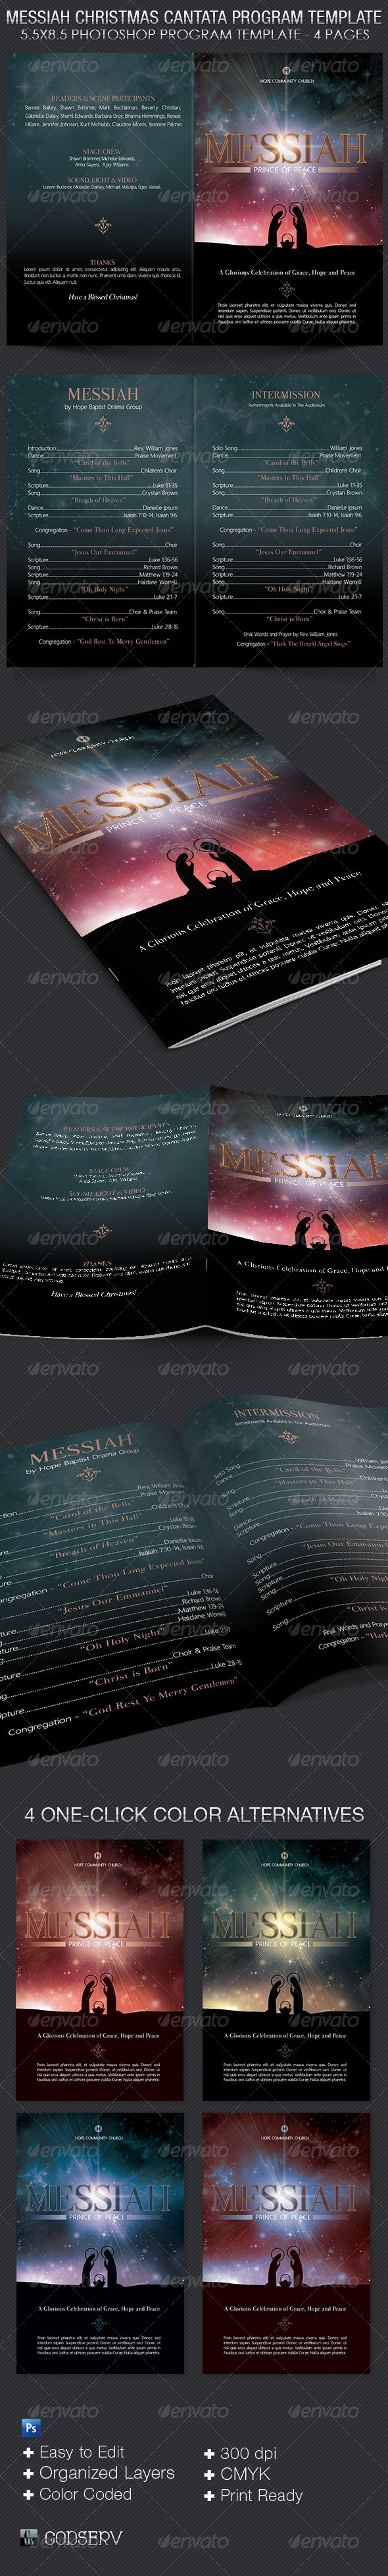 Messiah Christmas Cantata Program Template - Informational Brochures